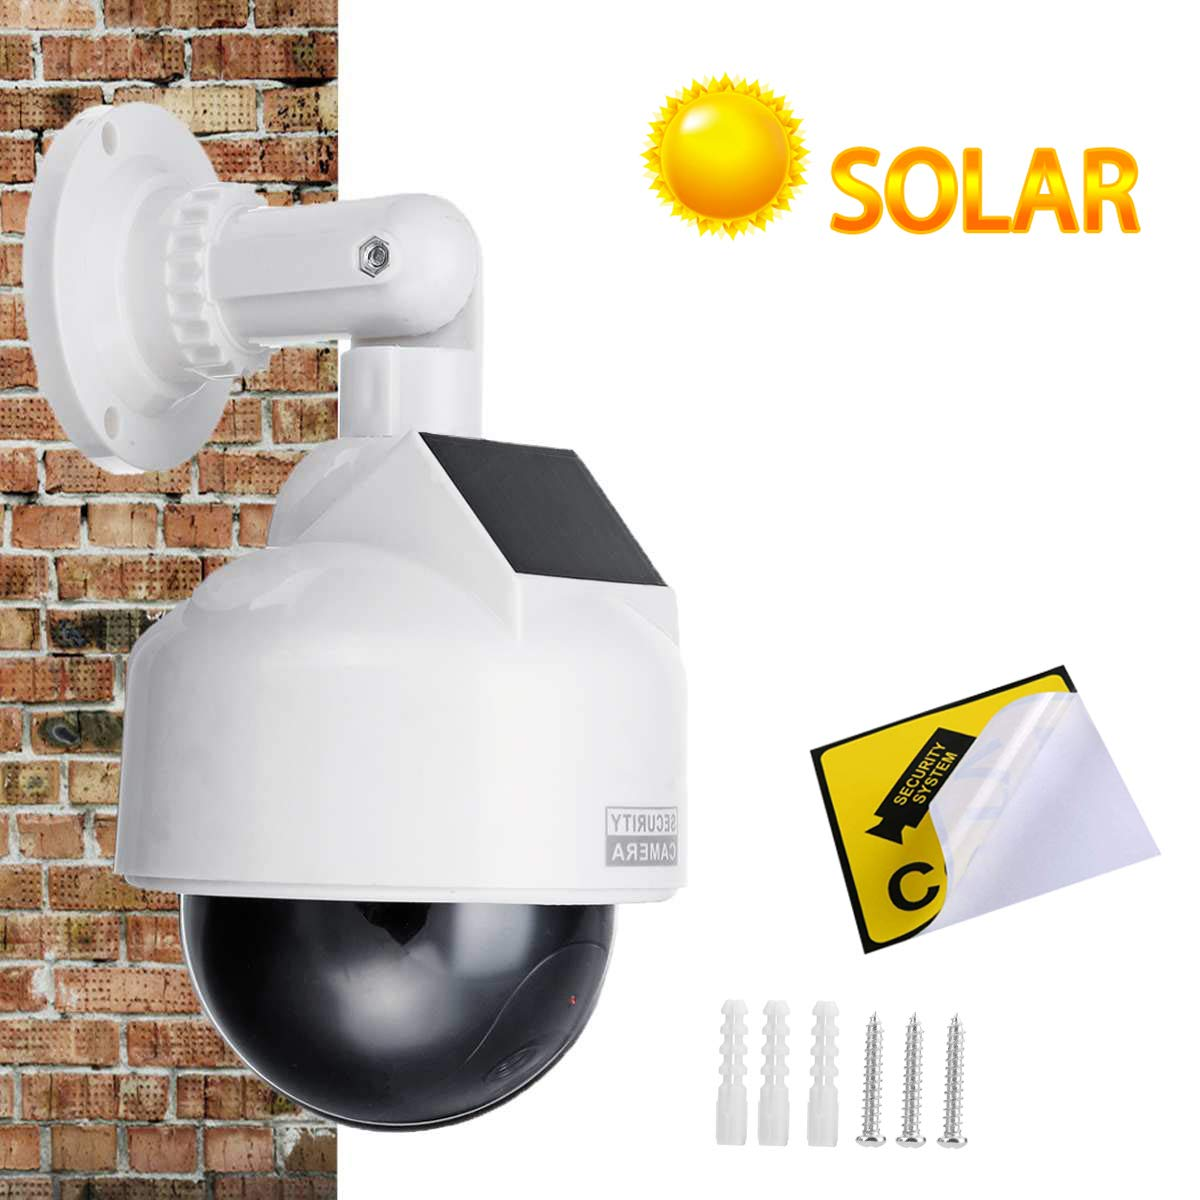 Indoor//Outdoor Use YSUCAU Solar Powered Dummy Fake CCTV Security Dome Camera with Flashing Red LED Light /& Warning Security Alert Sticker Decal